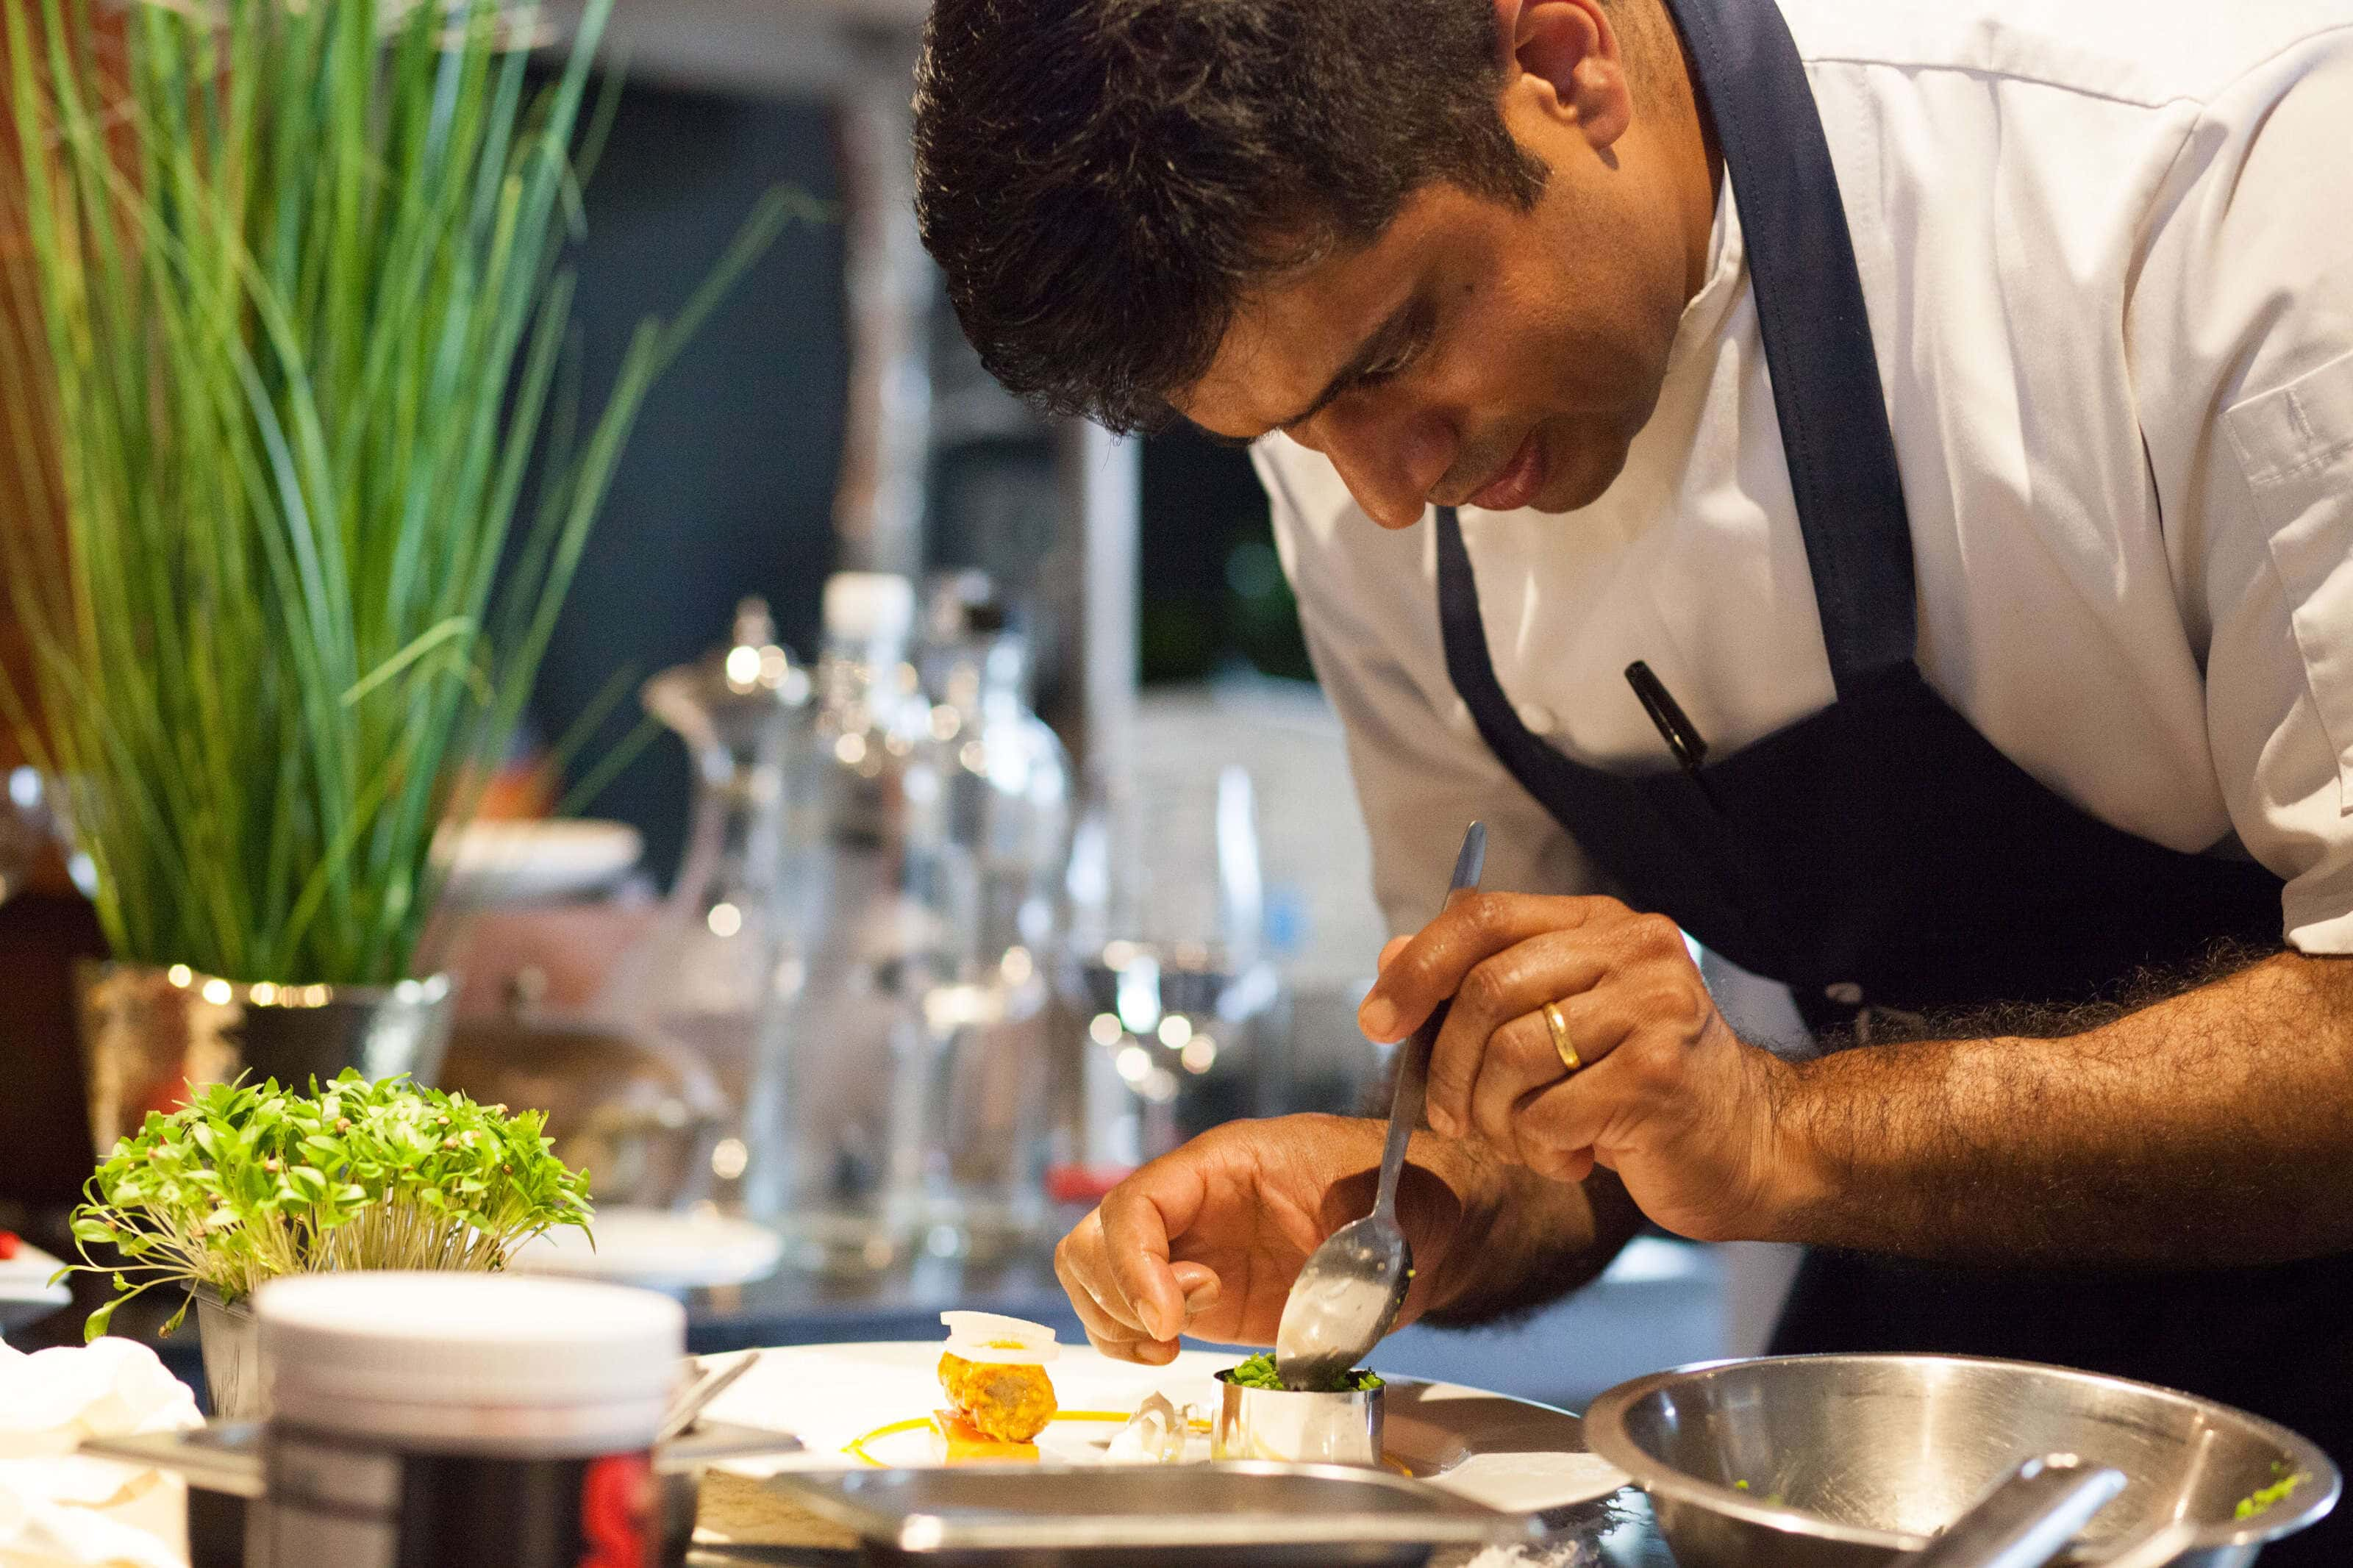 Hrishikesh Desai prepping a dish for a food photography shoot at the Gilpin Lakehouse in Cumbria.